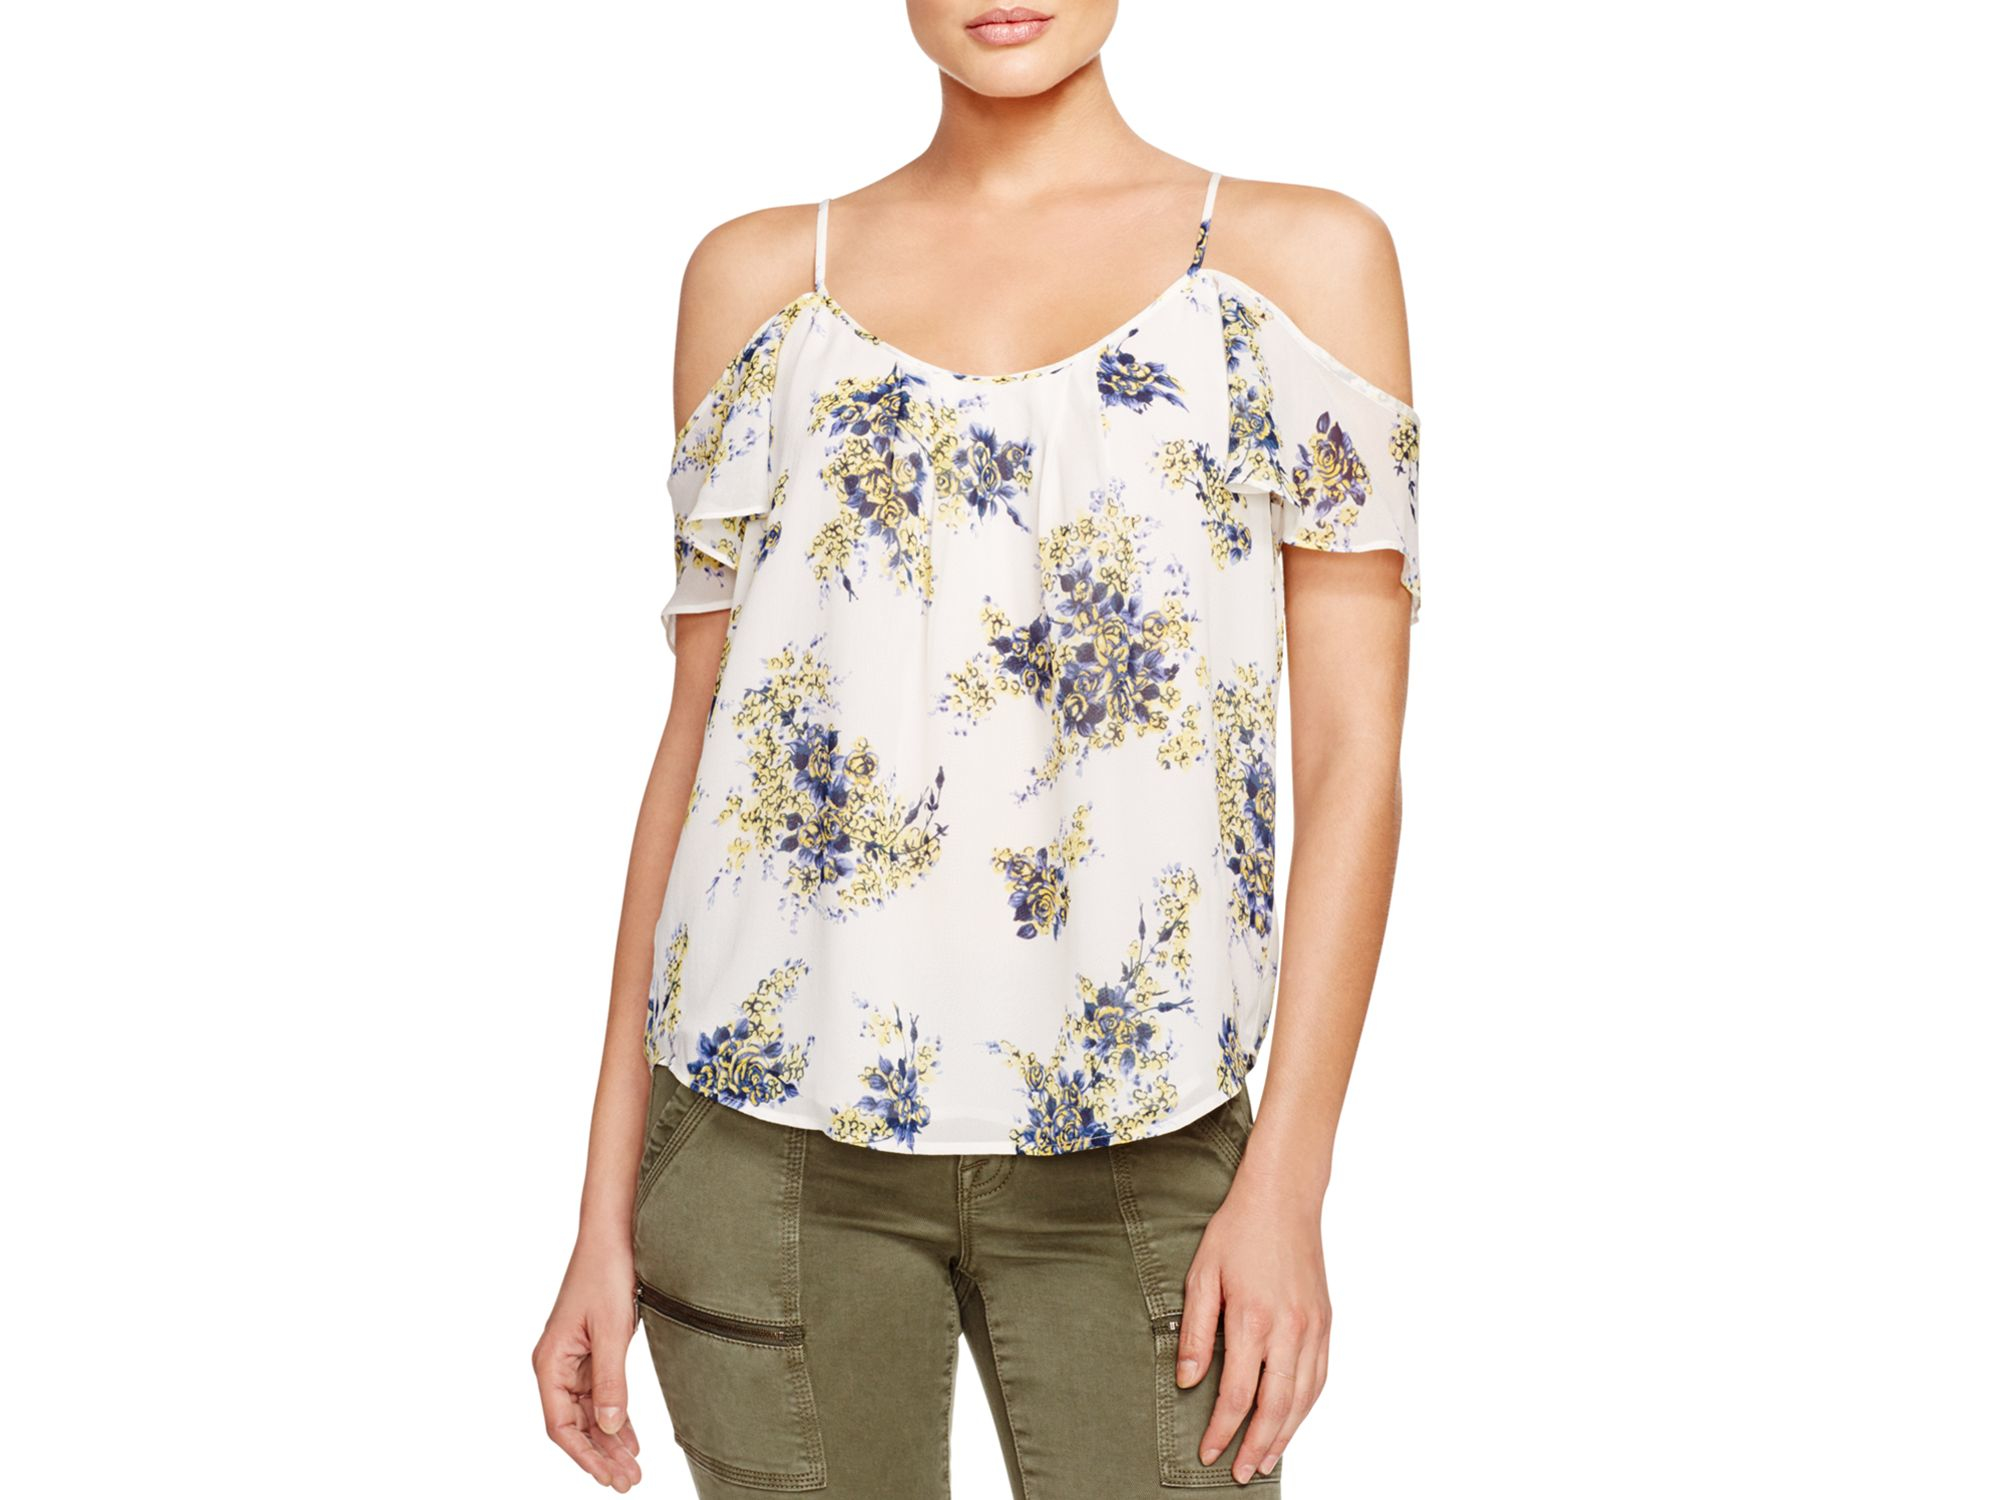 3b392fdfb77db Lyst - Joie Adorlee B Floral Top in White